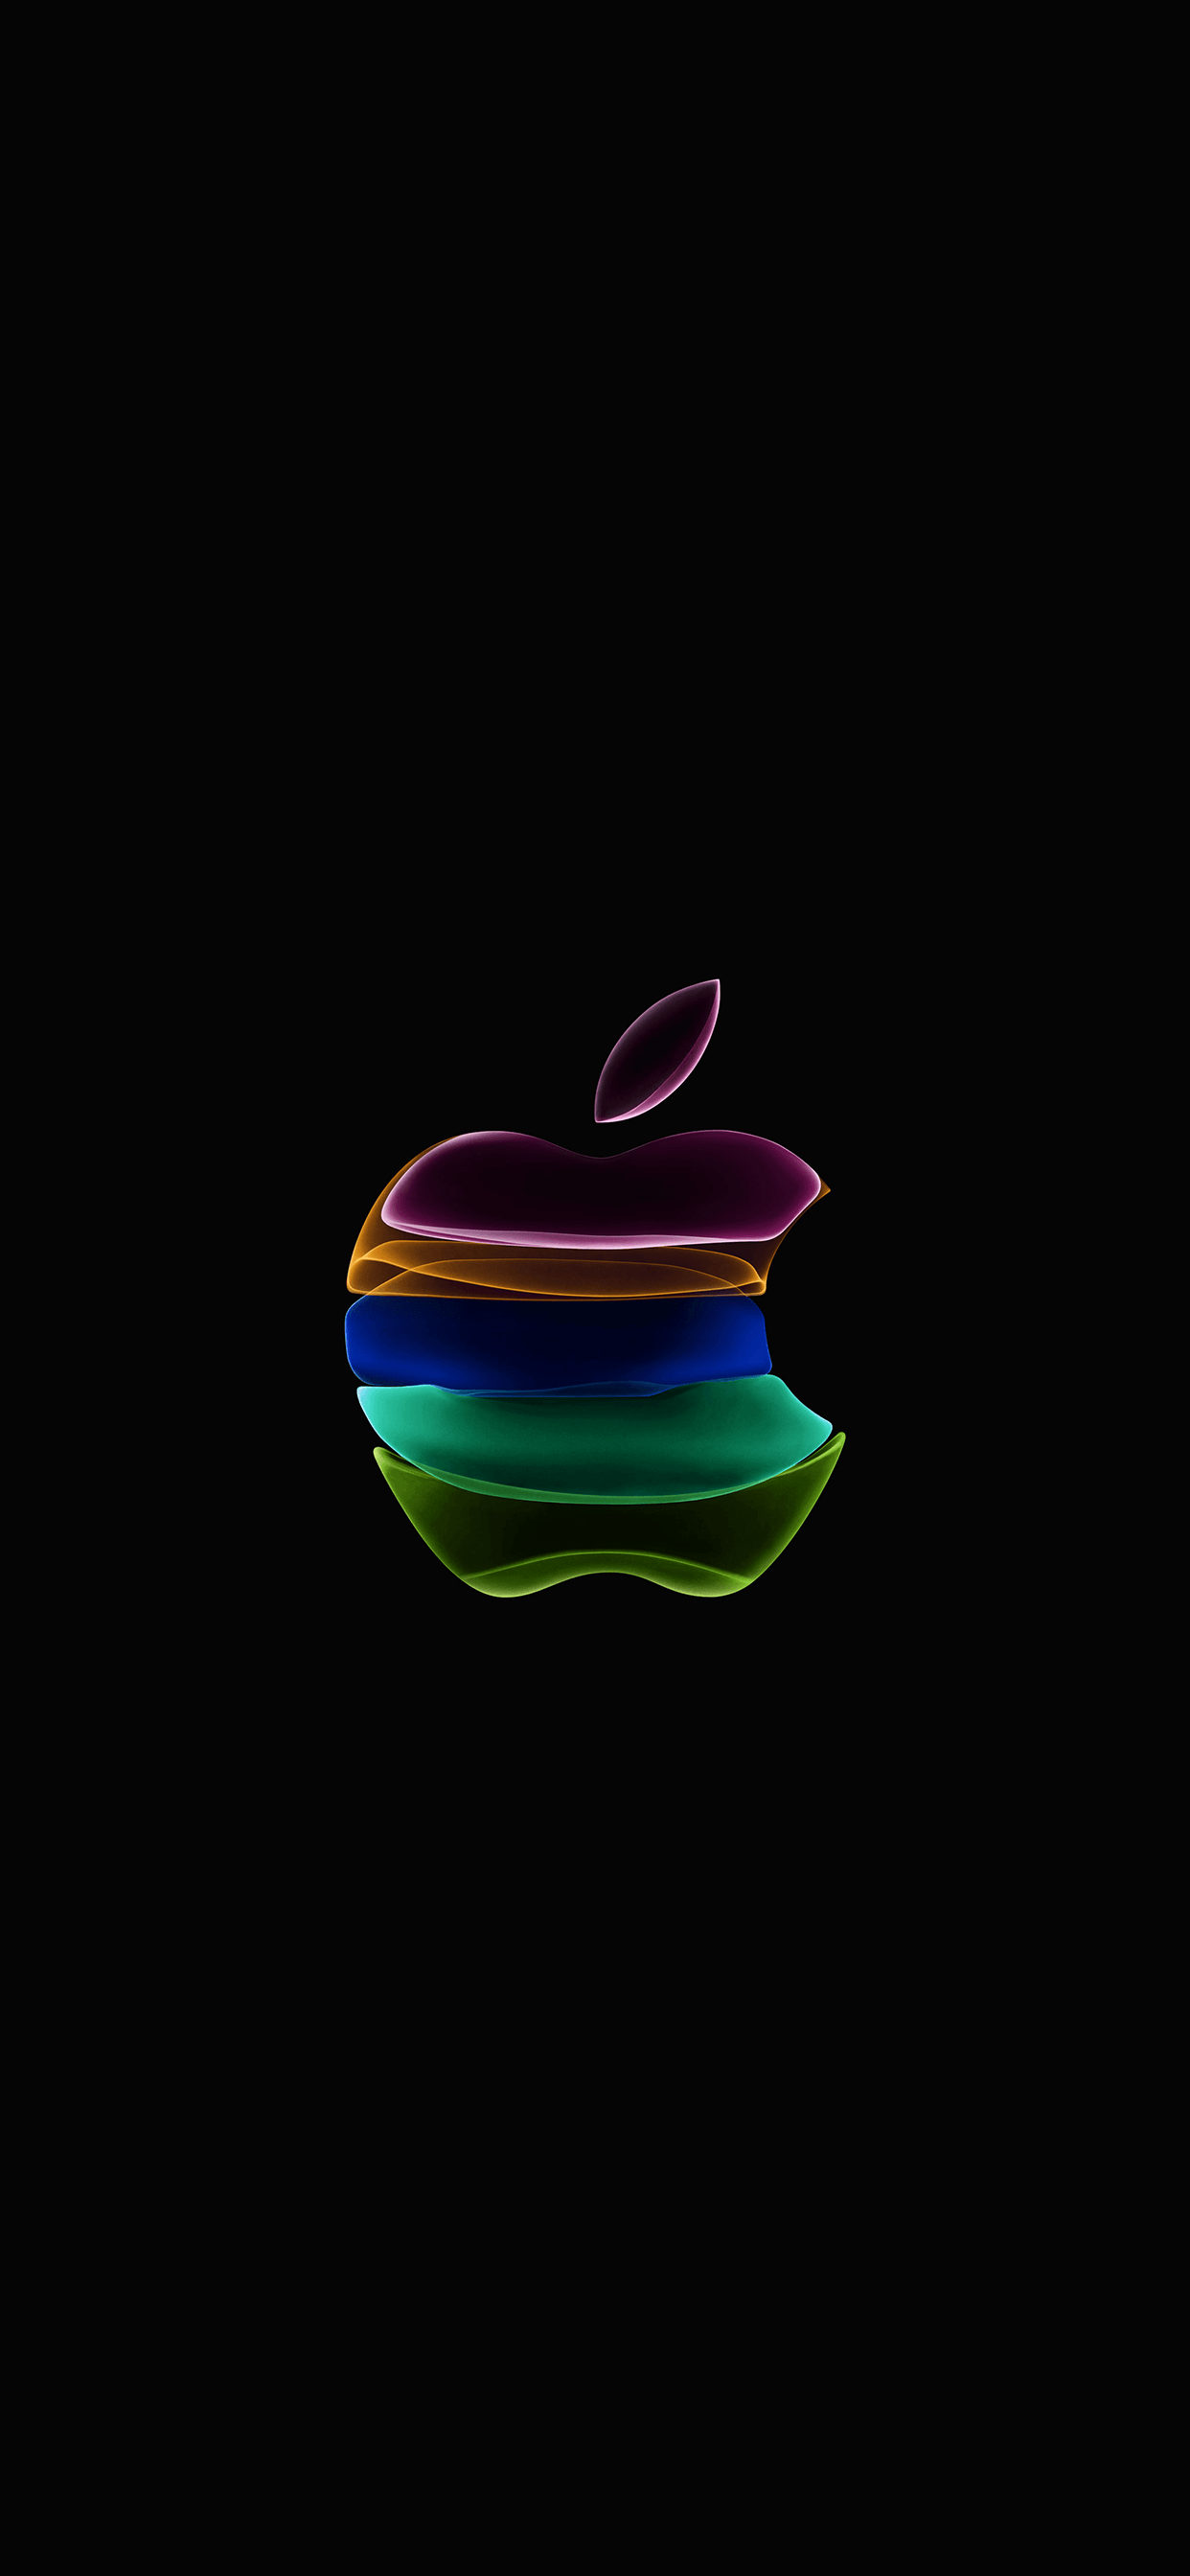 Apple Iphone 11 Pro Full Hd Wallpapers Wallpaper Cave